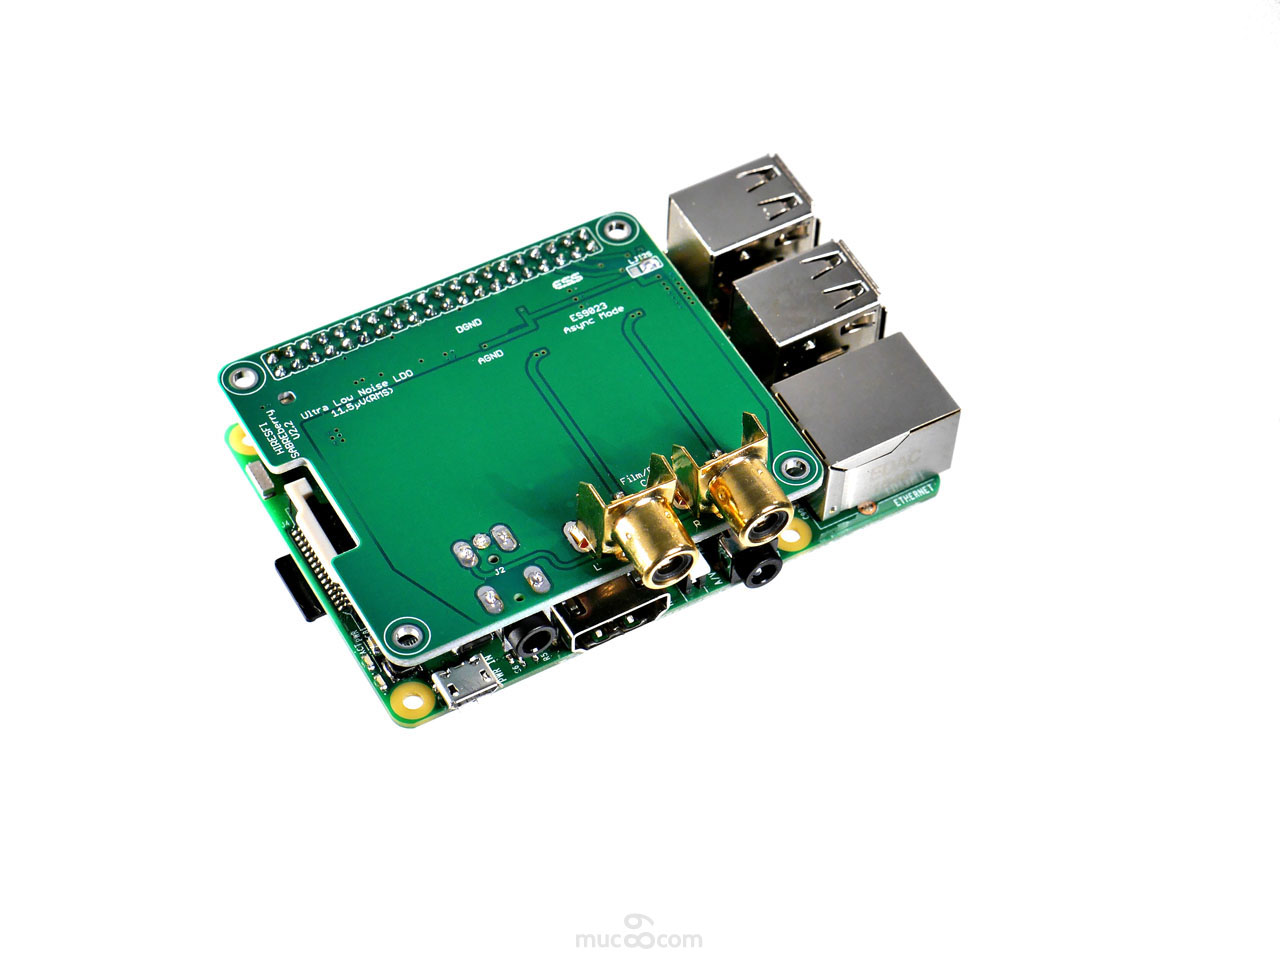 SABREberry ES9023 Flip-Chip